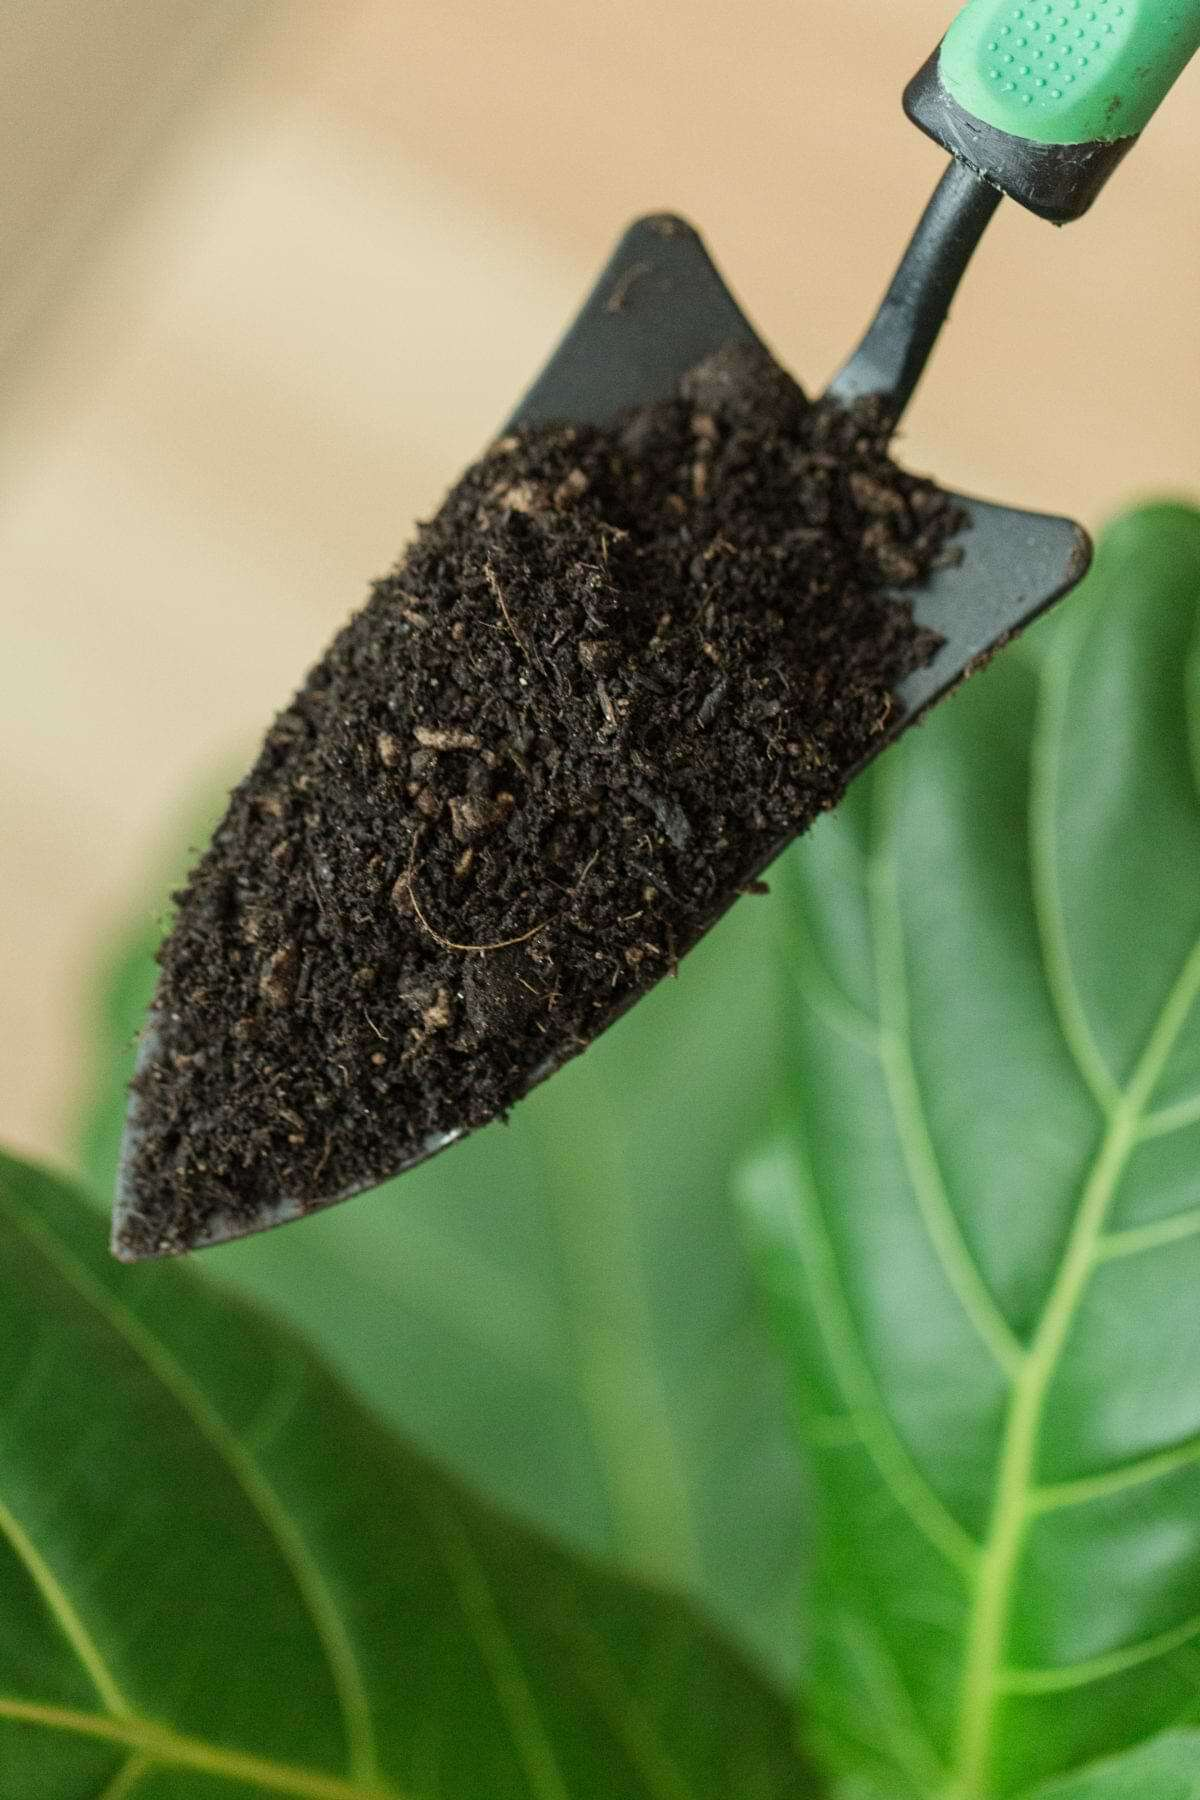 The correct fiddle leaf fig soil recipe makes a massive difference in the overall health and appearance of your plant. Learn the exact ingredients to use.